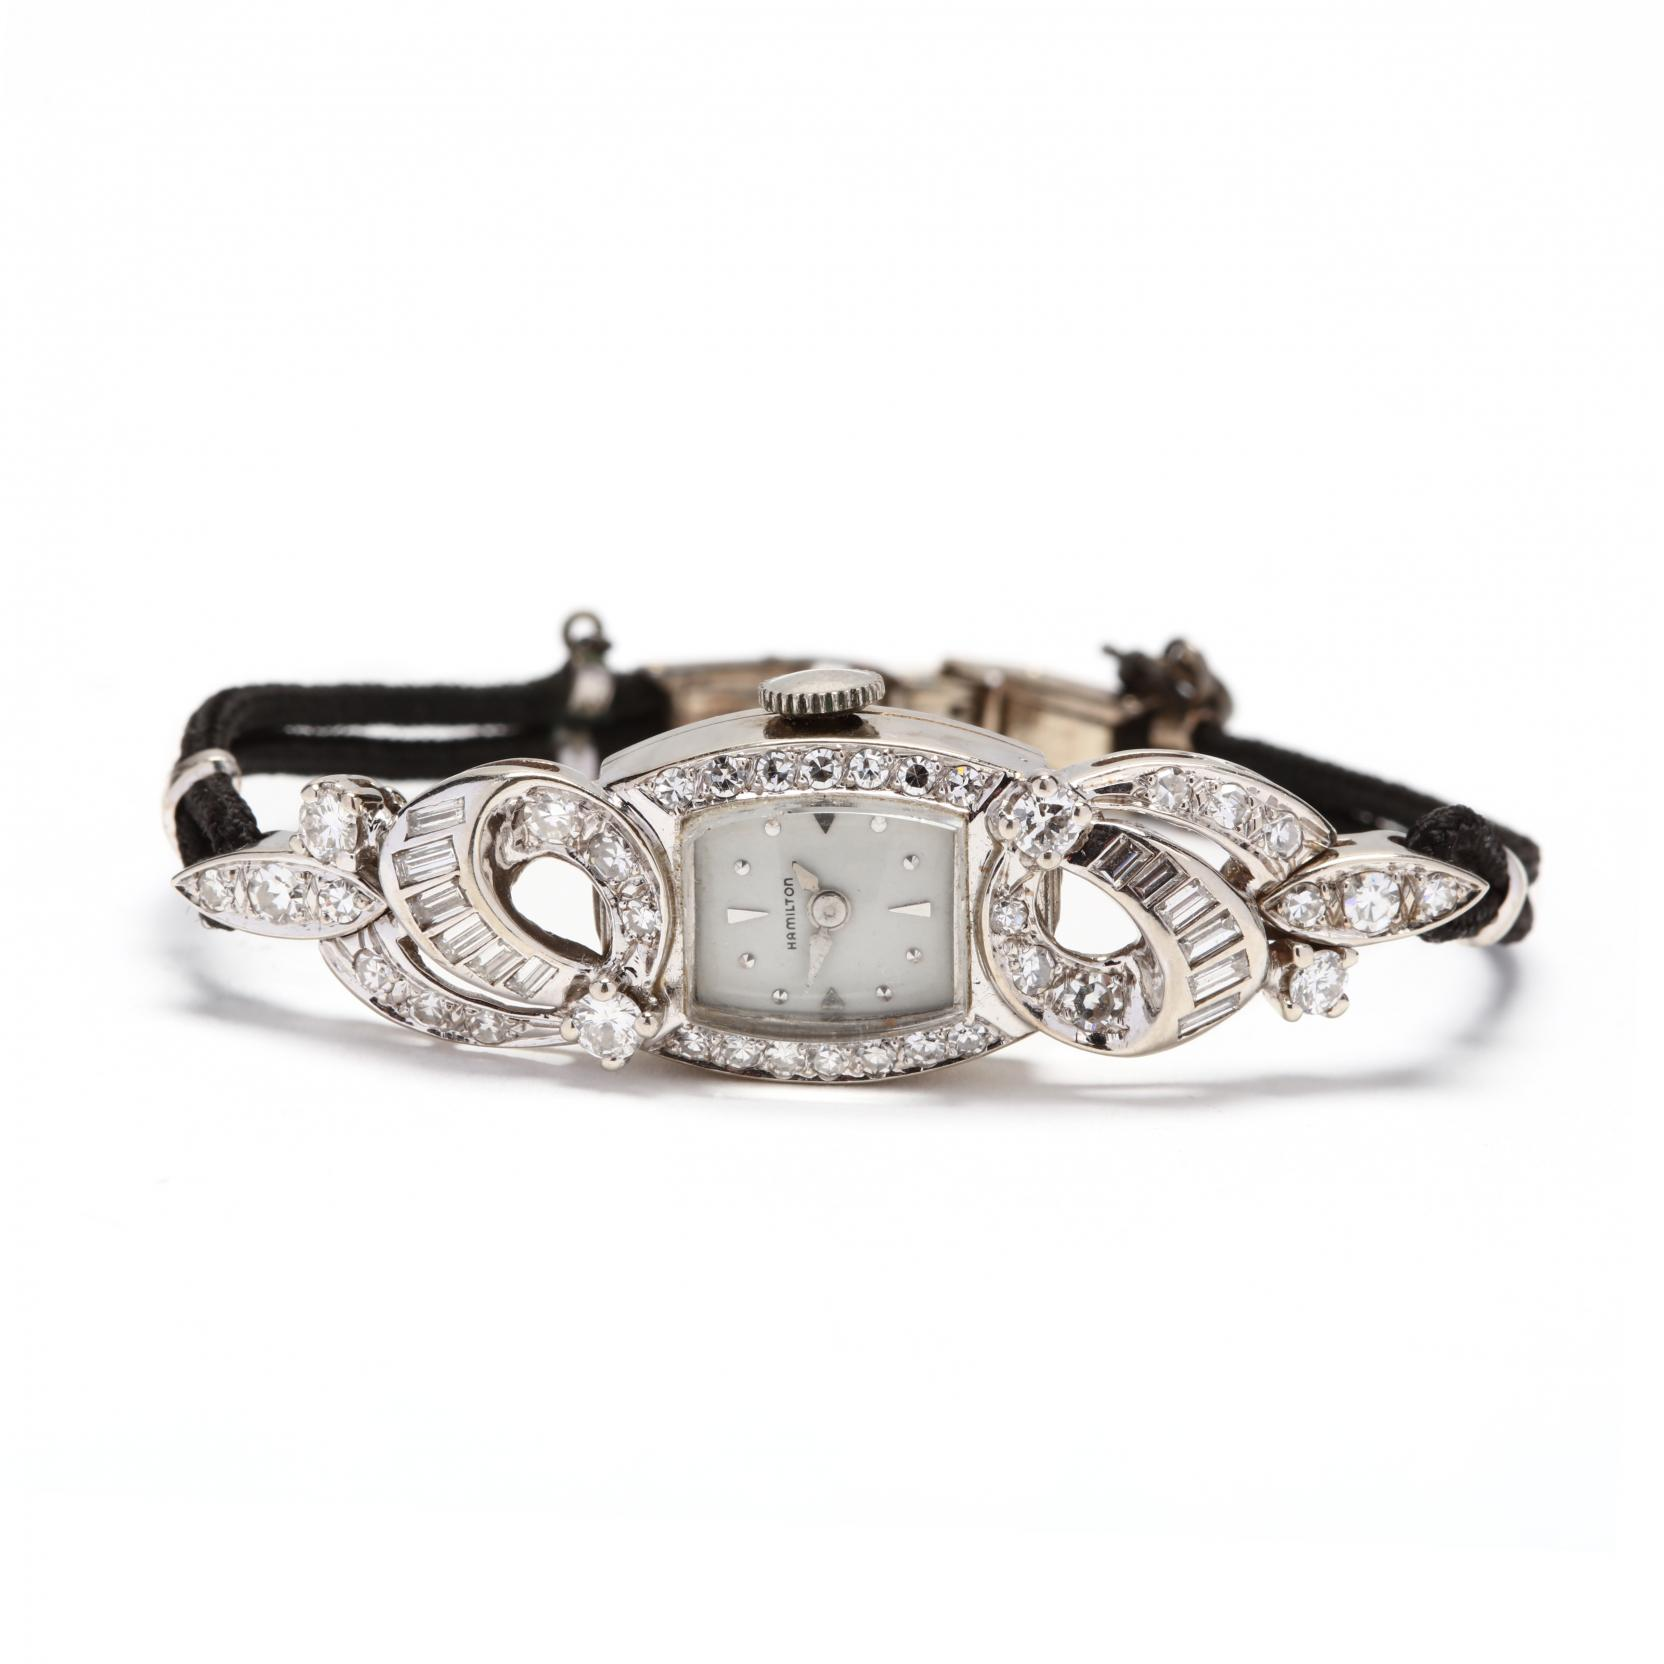 lady-s-vintage-14kt-white-gold-and-diamond-watch-hamilton